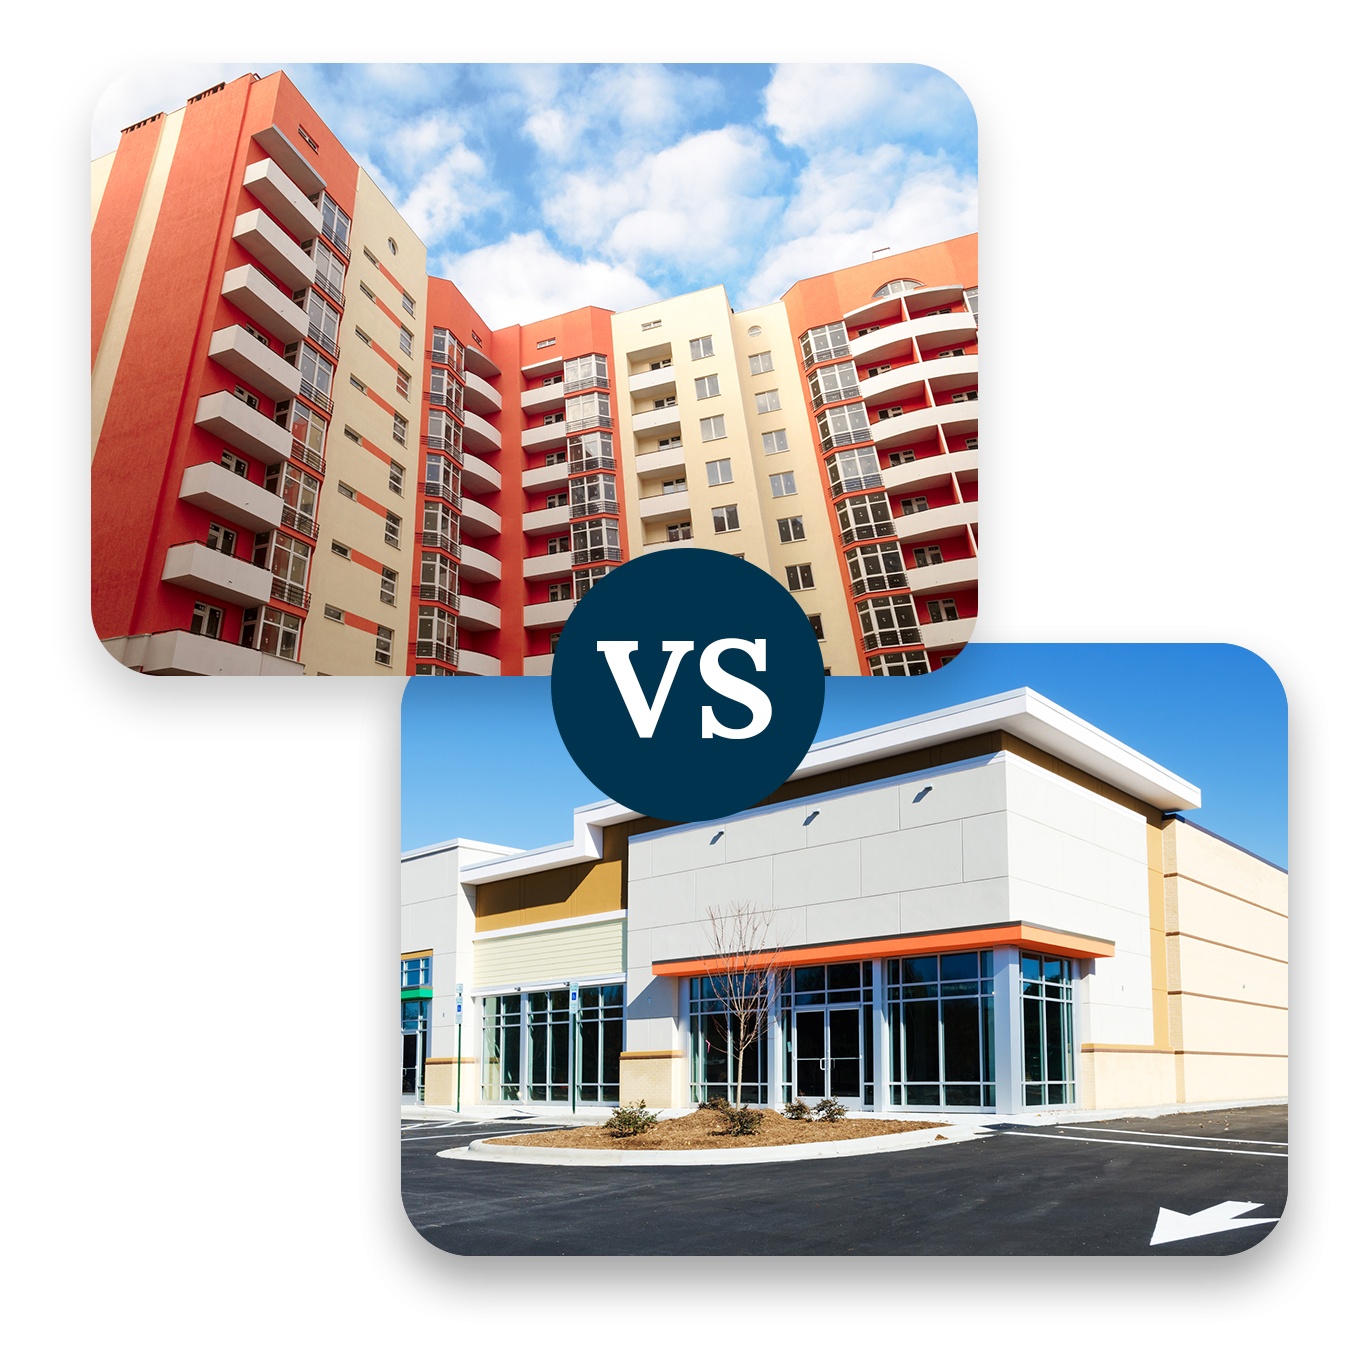 Multifamily property vs other retail properties